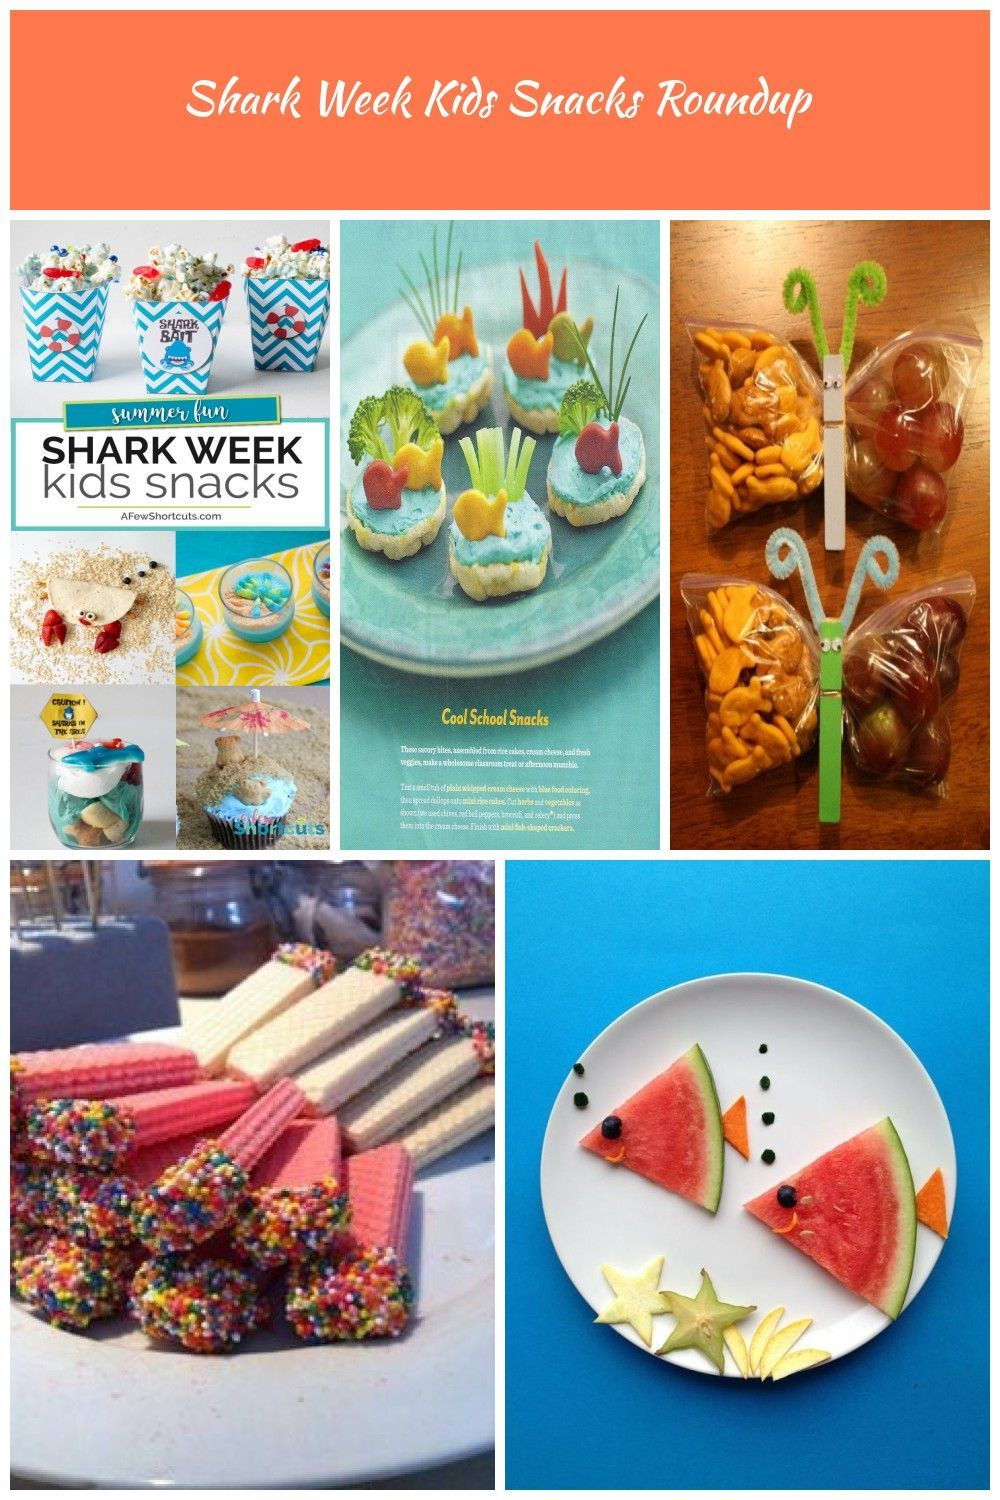 Shark Week is almost here. Time to make some fun Shark Week Kids Snacks to keep the entire family in on the fun! Check out these adorable ideas! #sharkweek #kidfood #snacks #recipes #summer kids snacks Shark Week Kids Snacks Roundup #sharkweekfood Shark Week is almost here. Time to make some fun Shark Week Kids Snacks to keep the entire family in on the fun! Check out these adorable ideas! #sharkweek #kidfood #snacks #recipes #summer kids snacks Shark Week Kids Snacks Roundup #sharkweekfood